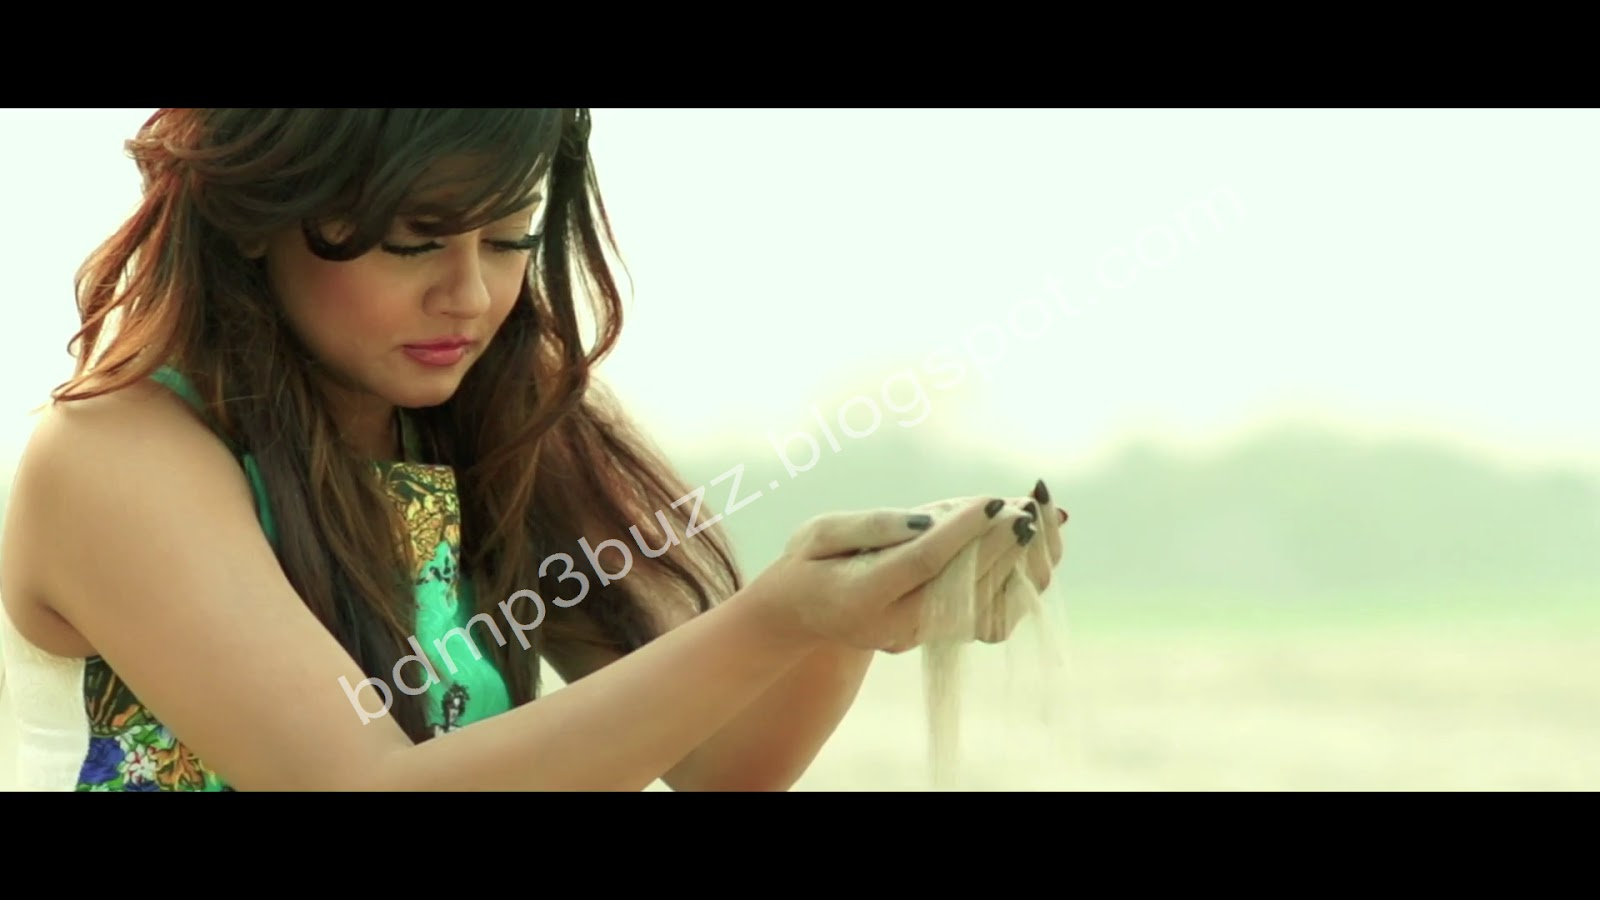 Obujh mon by hridoy khan mp3 song download.